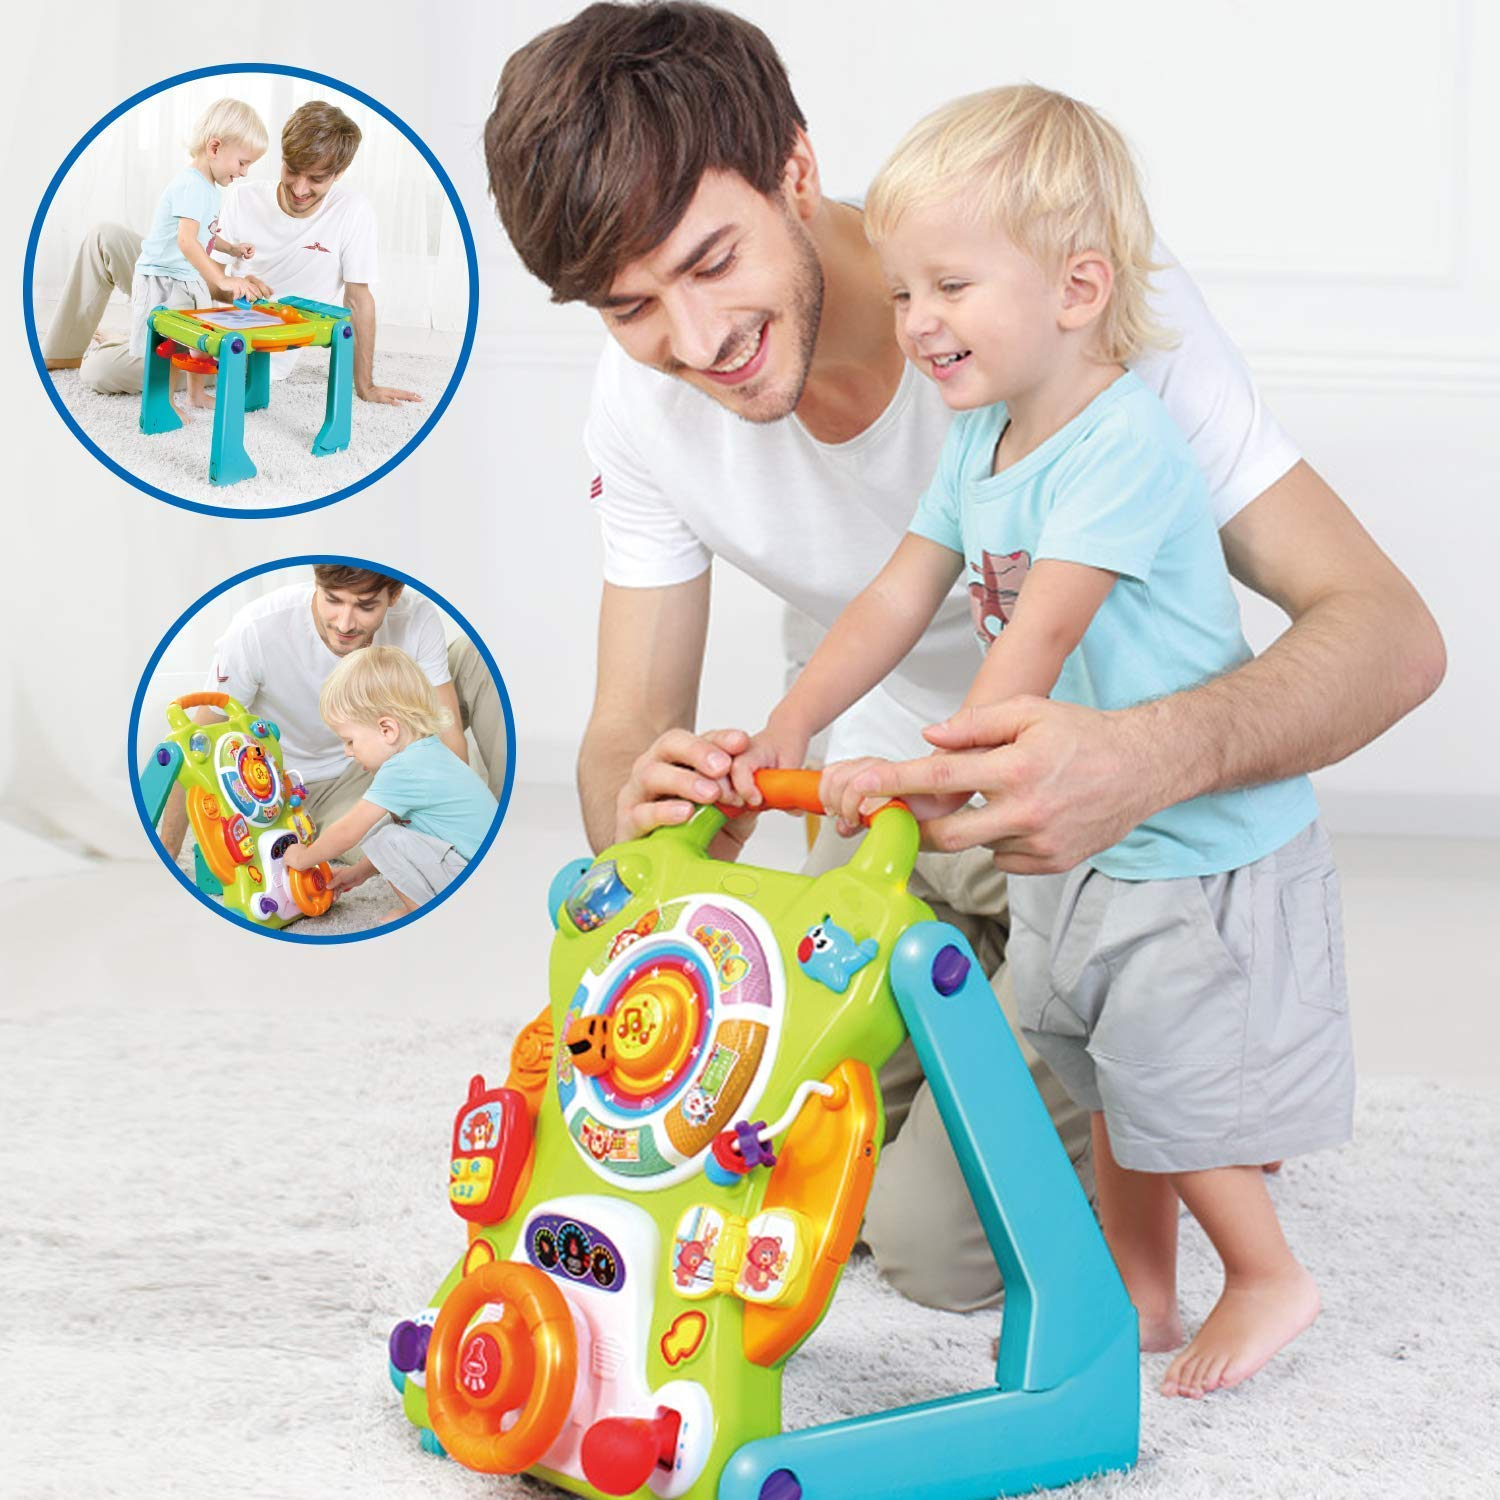 Baby Products New Blue Circle Car Walker Activity Toy/Musical/Fast Deliver Baby Rex